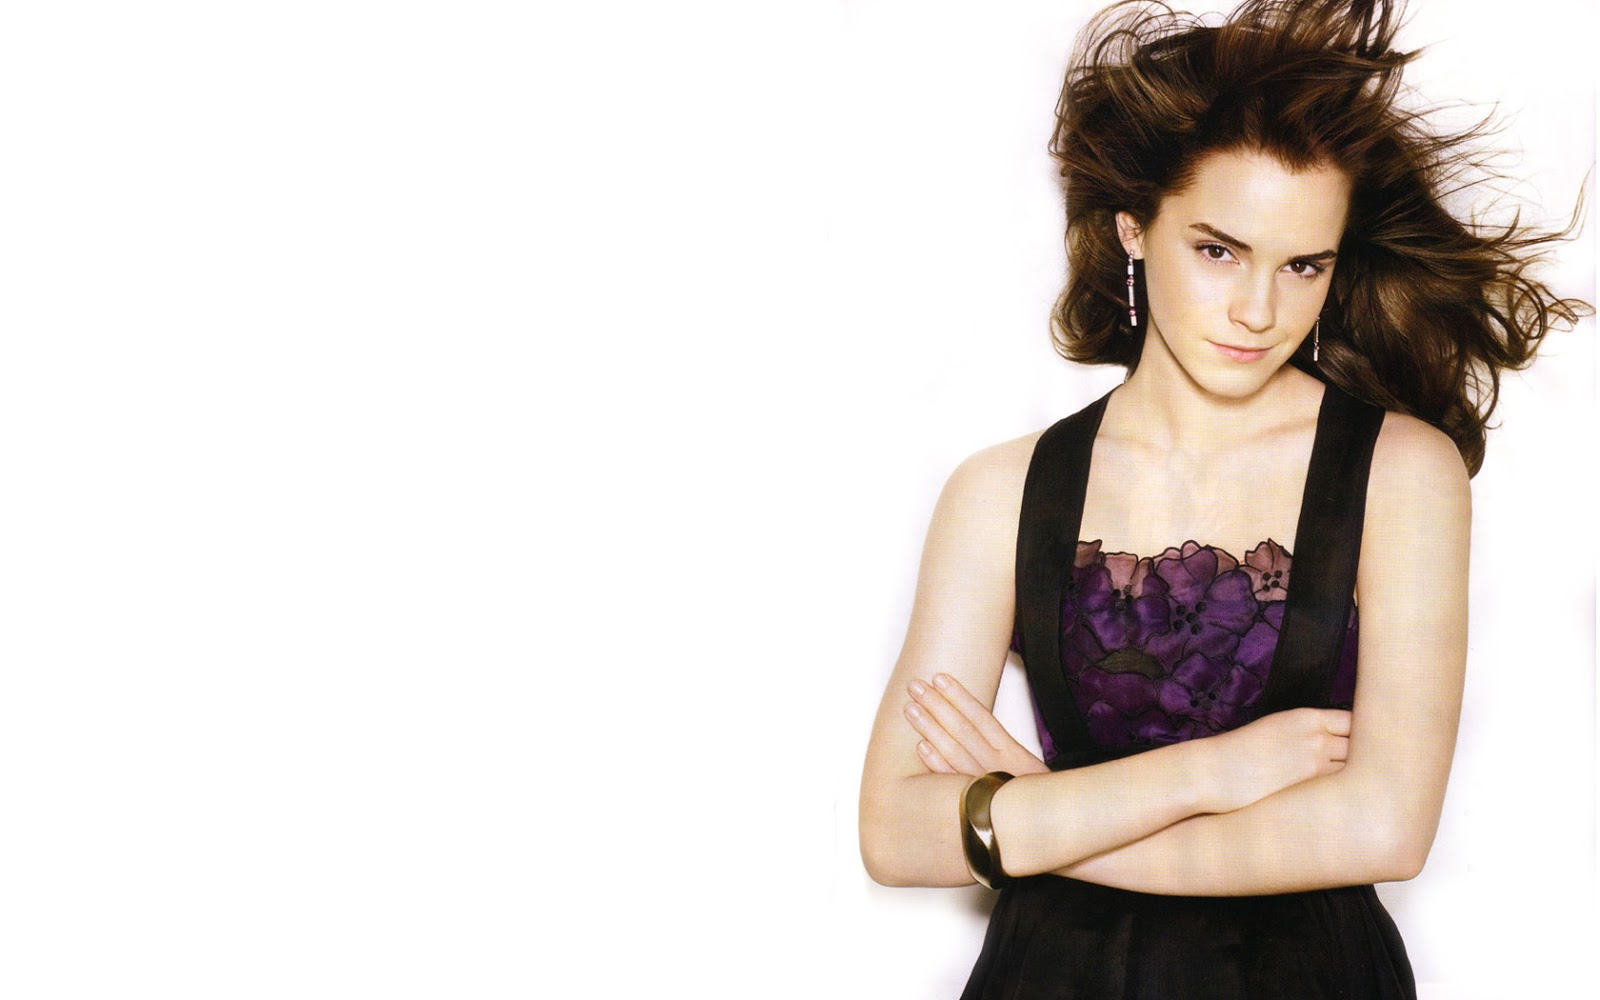 Emma Watson Plane White Background For Desktop - emma watson plane white background wallpapers